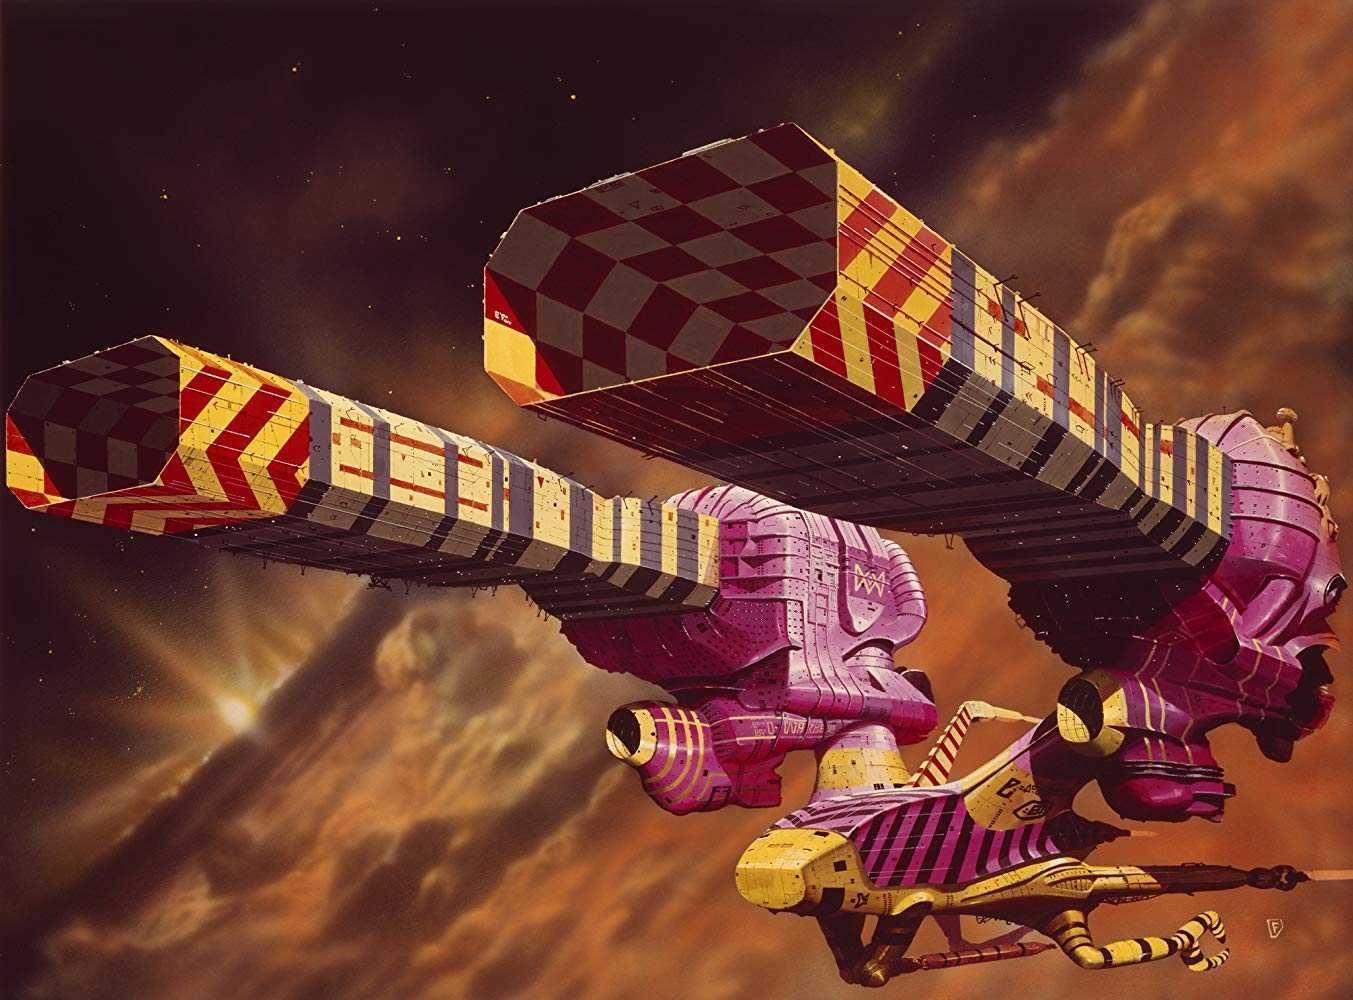 Chris Foss's concept artwork in Jodorowsky's Dune (2013)